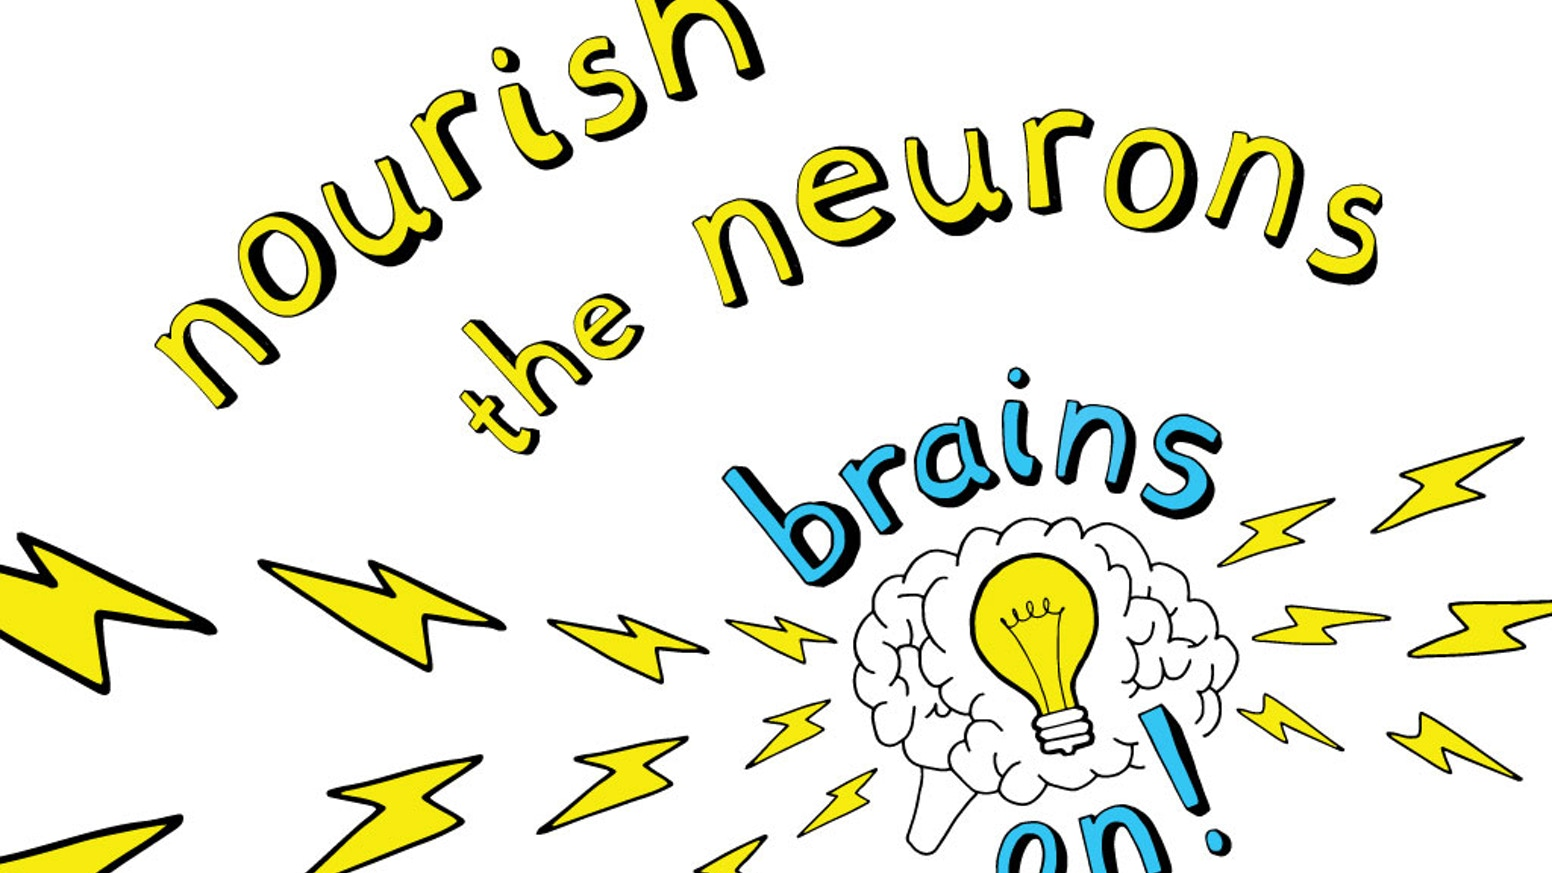 Brains On! is a science podcast for curious kids and grown-ups where we explore things like space, animals, volcanoes and farts!